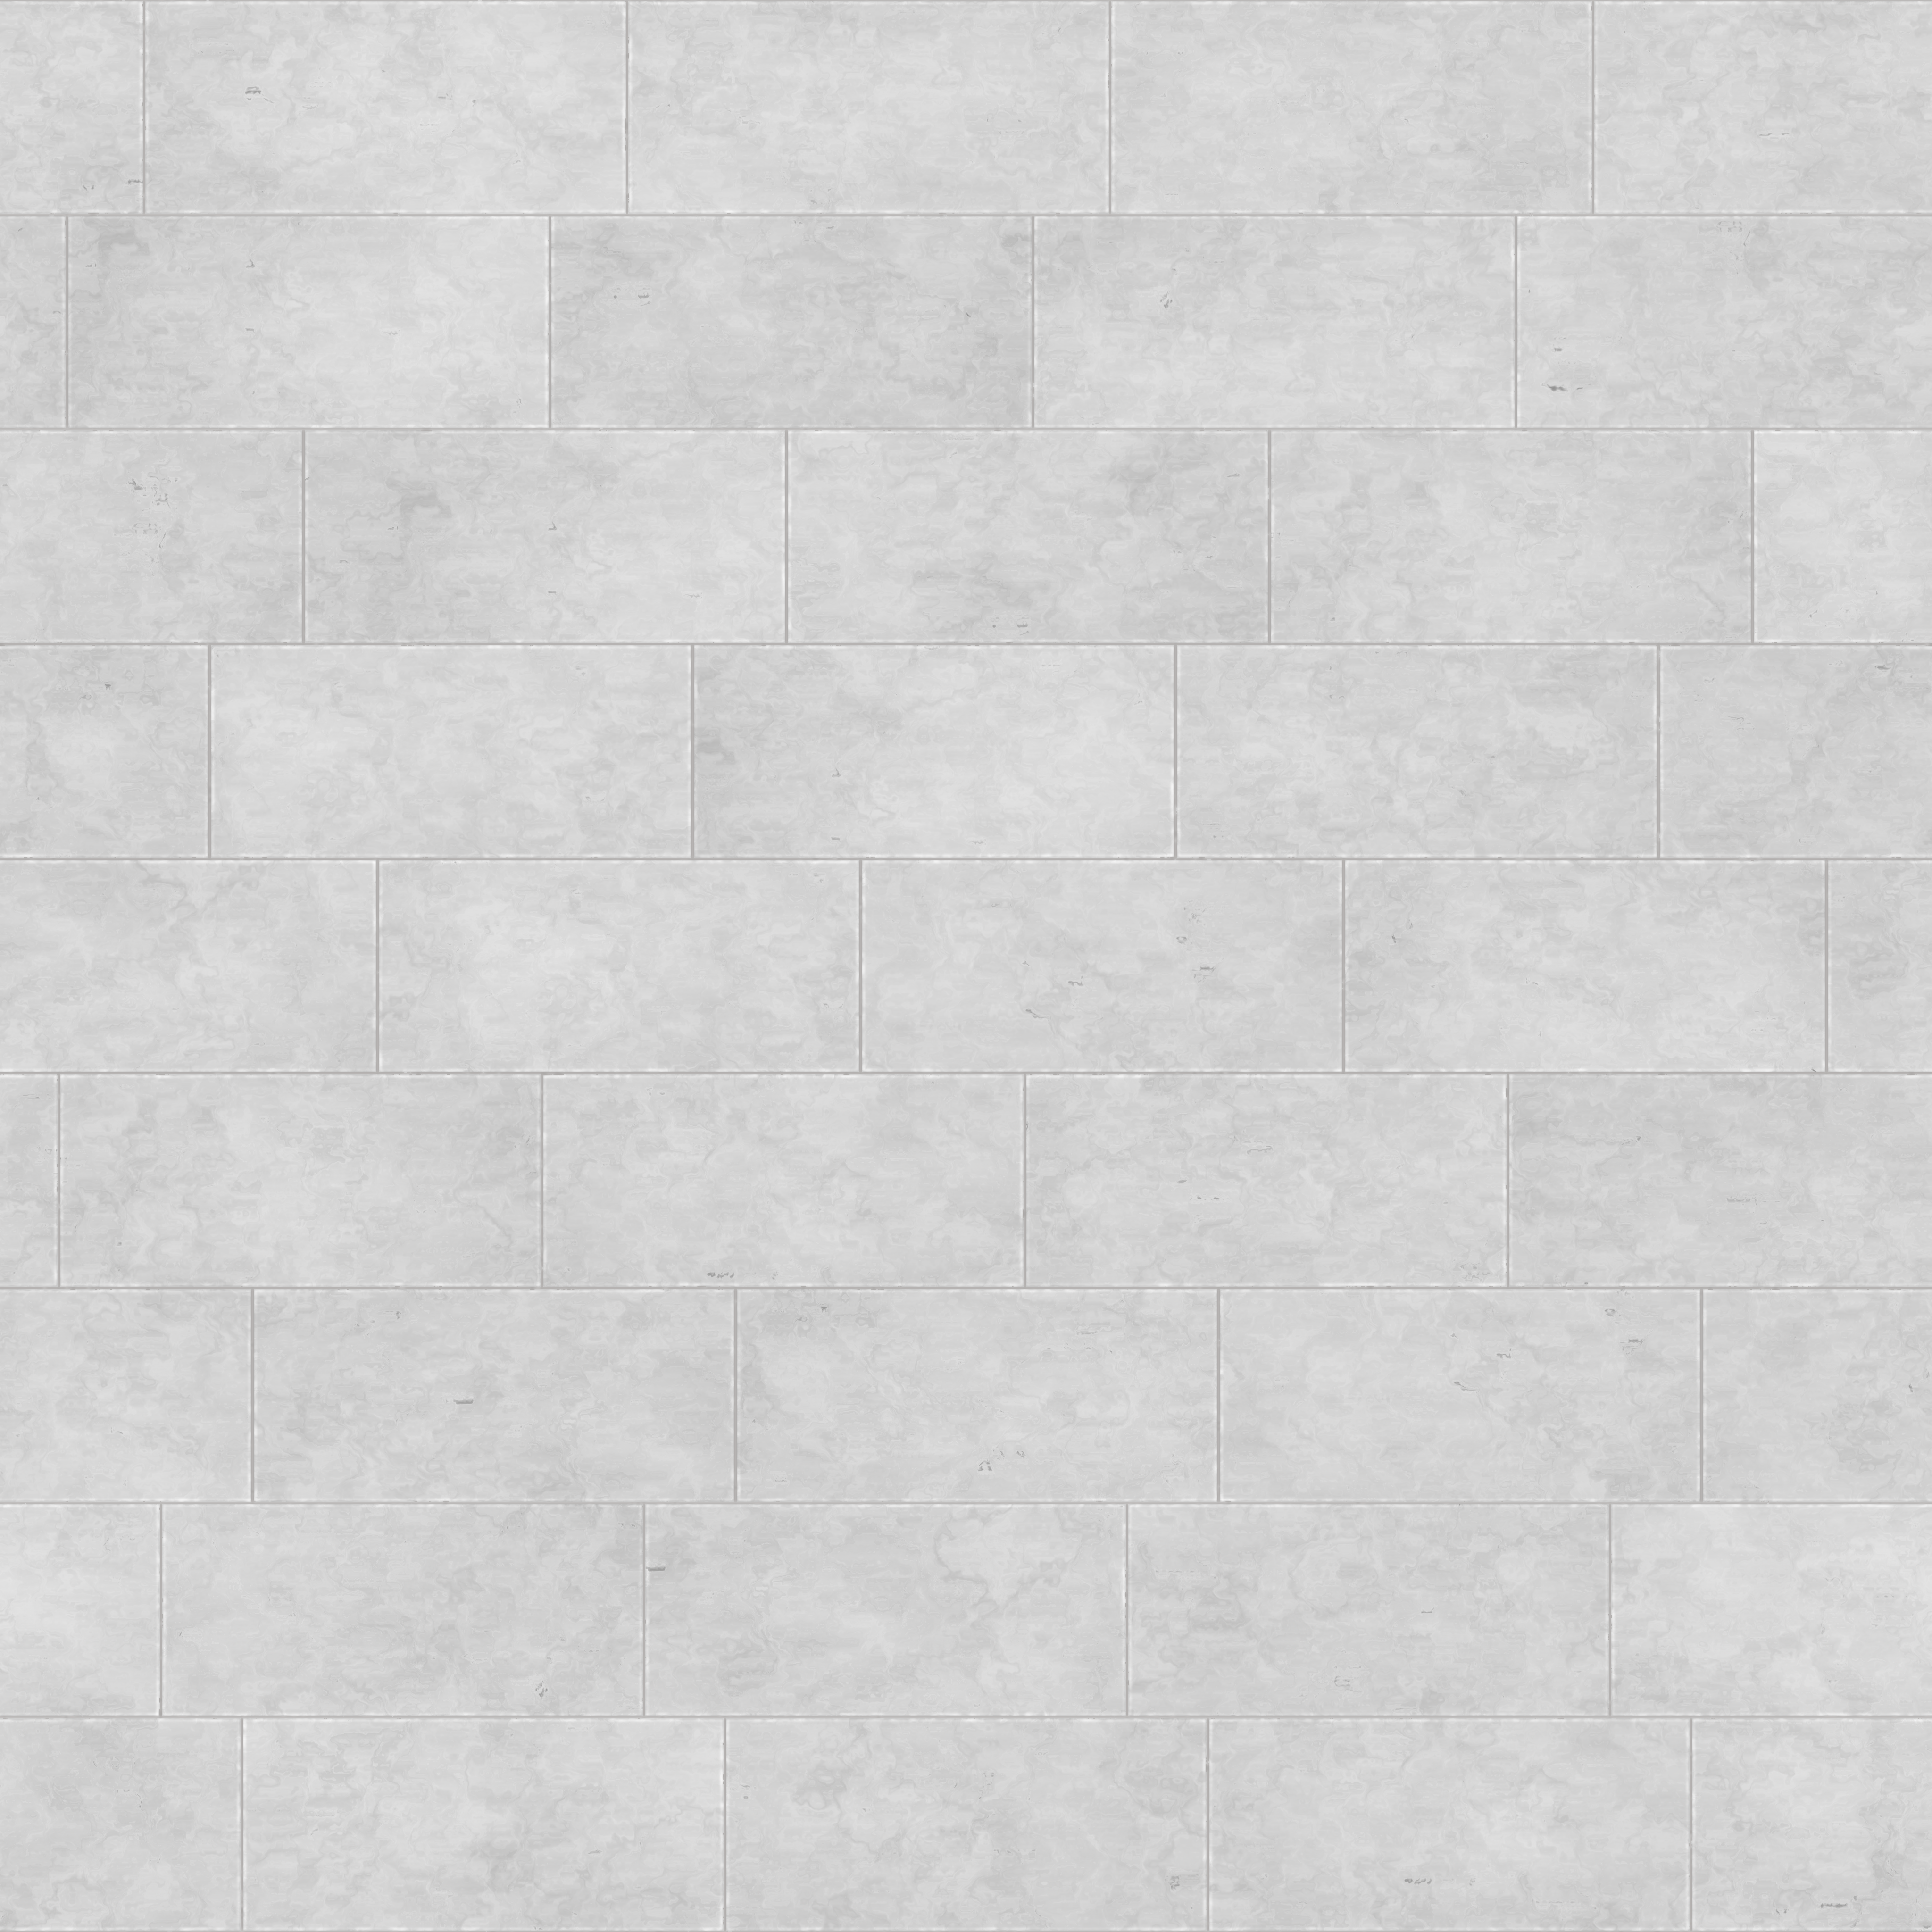 Stone Tiles Floor 03 Free Pbr Texture From Cgbookcase Com